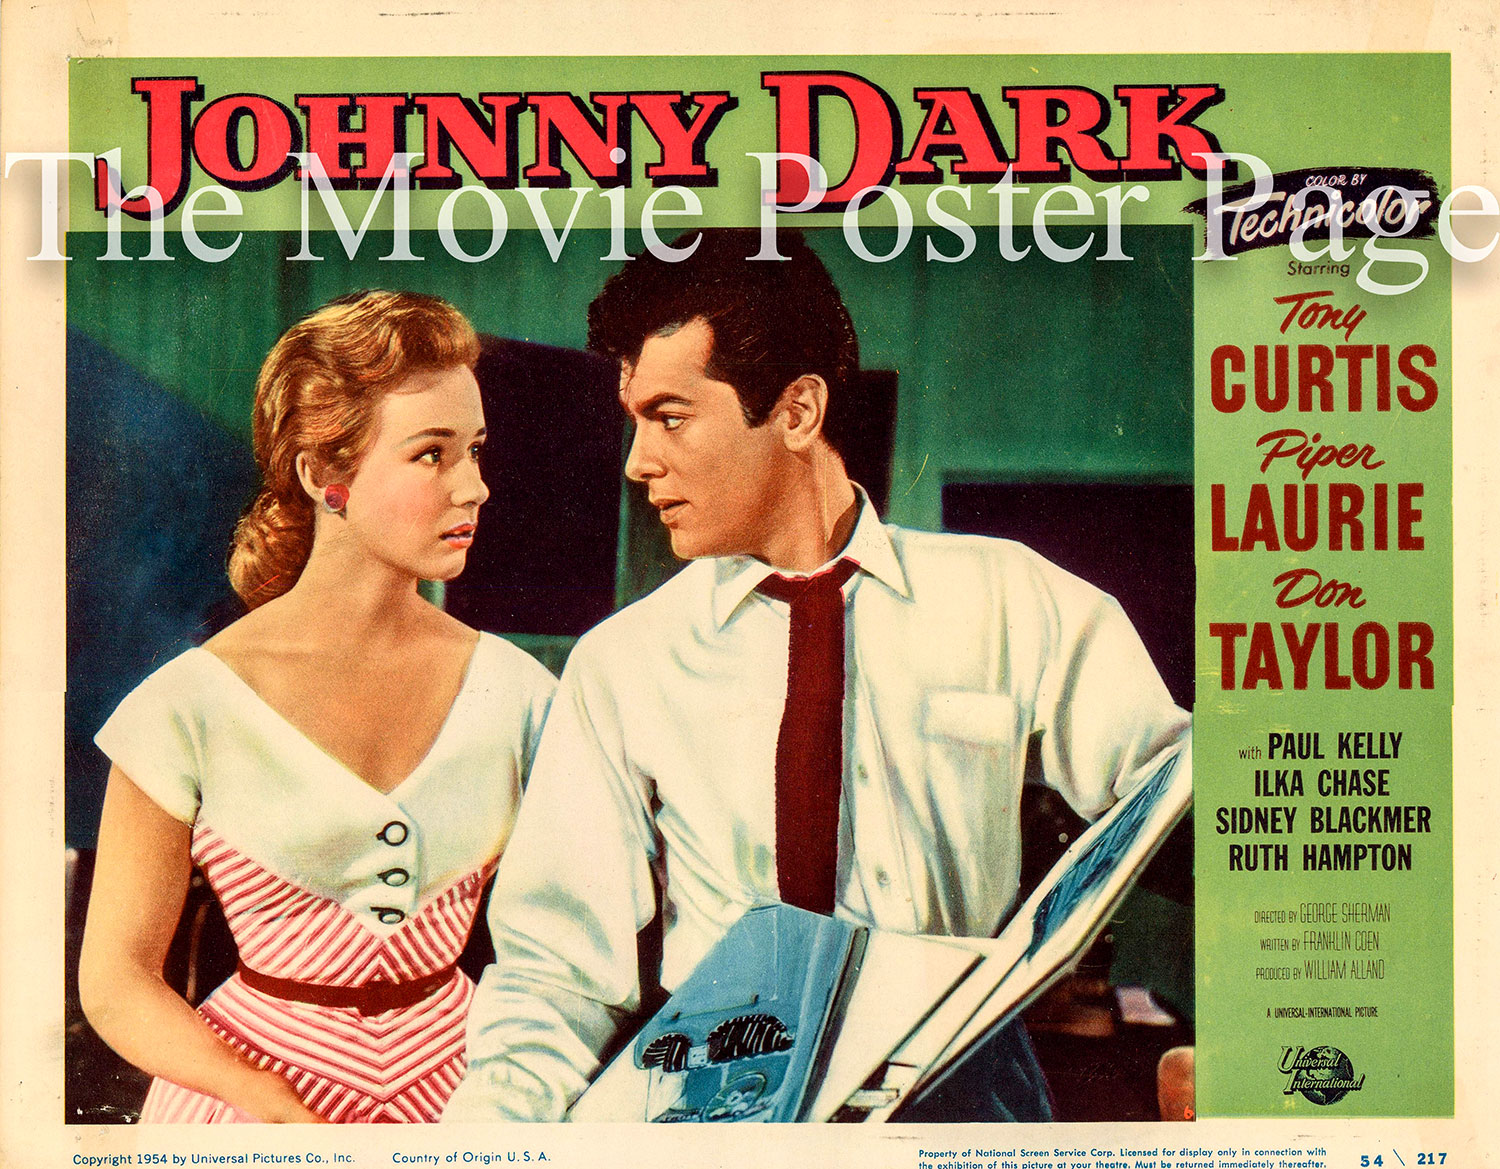 Pictured is a US lobby card for the 1954 George Sherman film Johnny Dark starring Tony Curtis and Piper Laurie.